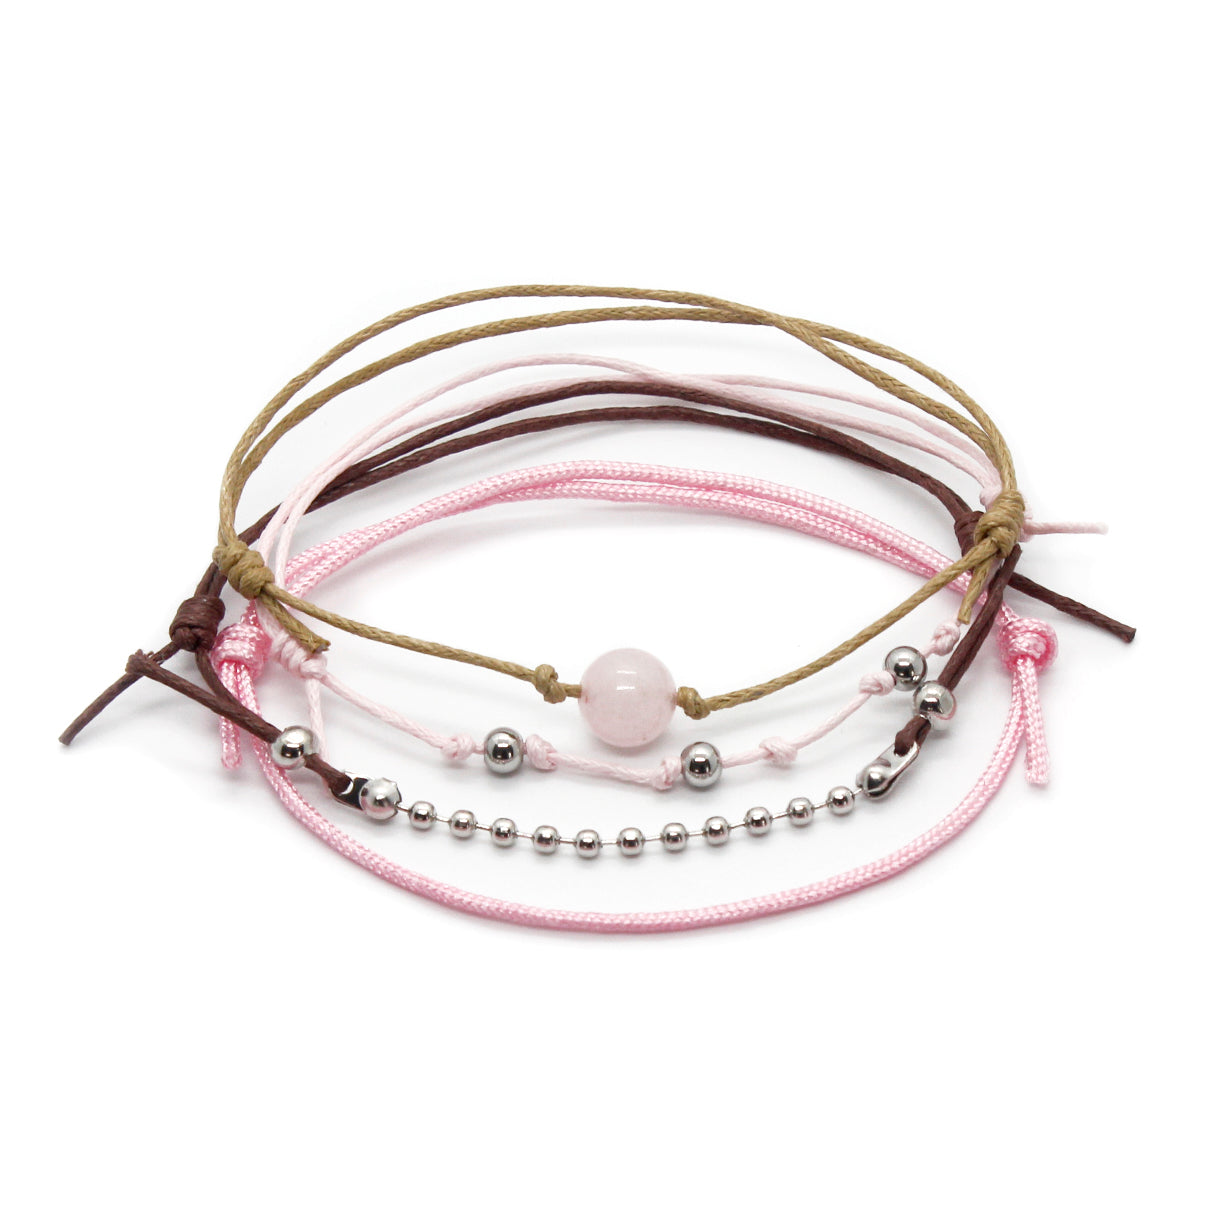 Rose Quartz Gemstone Bracelet - 4 Piece Set - O YEAH GIFTS